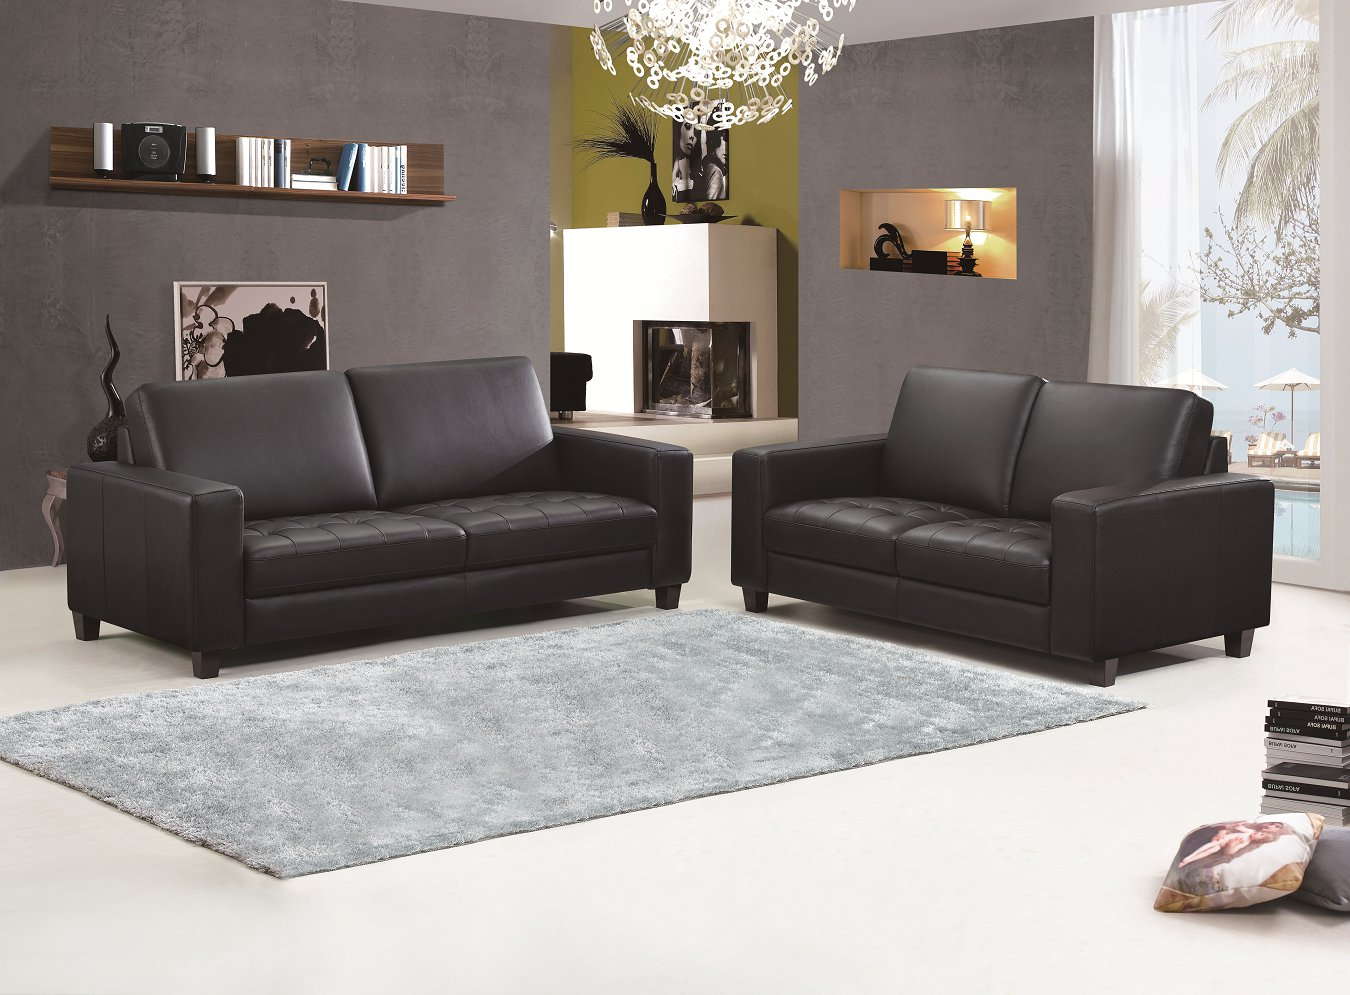 Sectional Sofa,Genuine Leather Sofa Combination